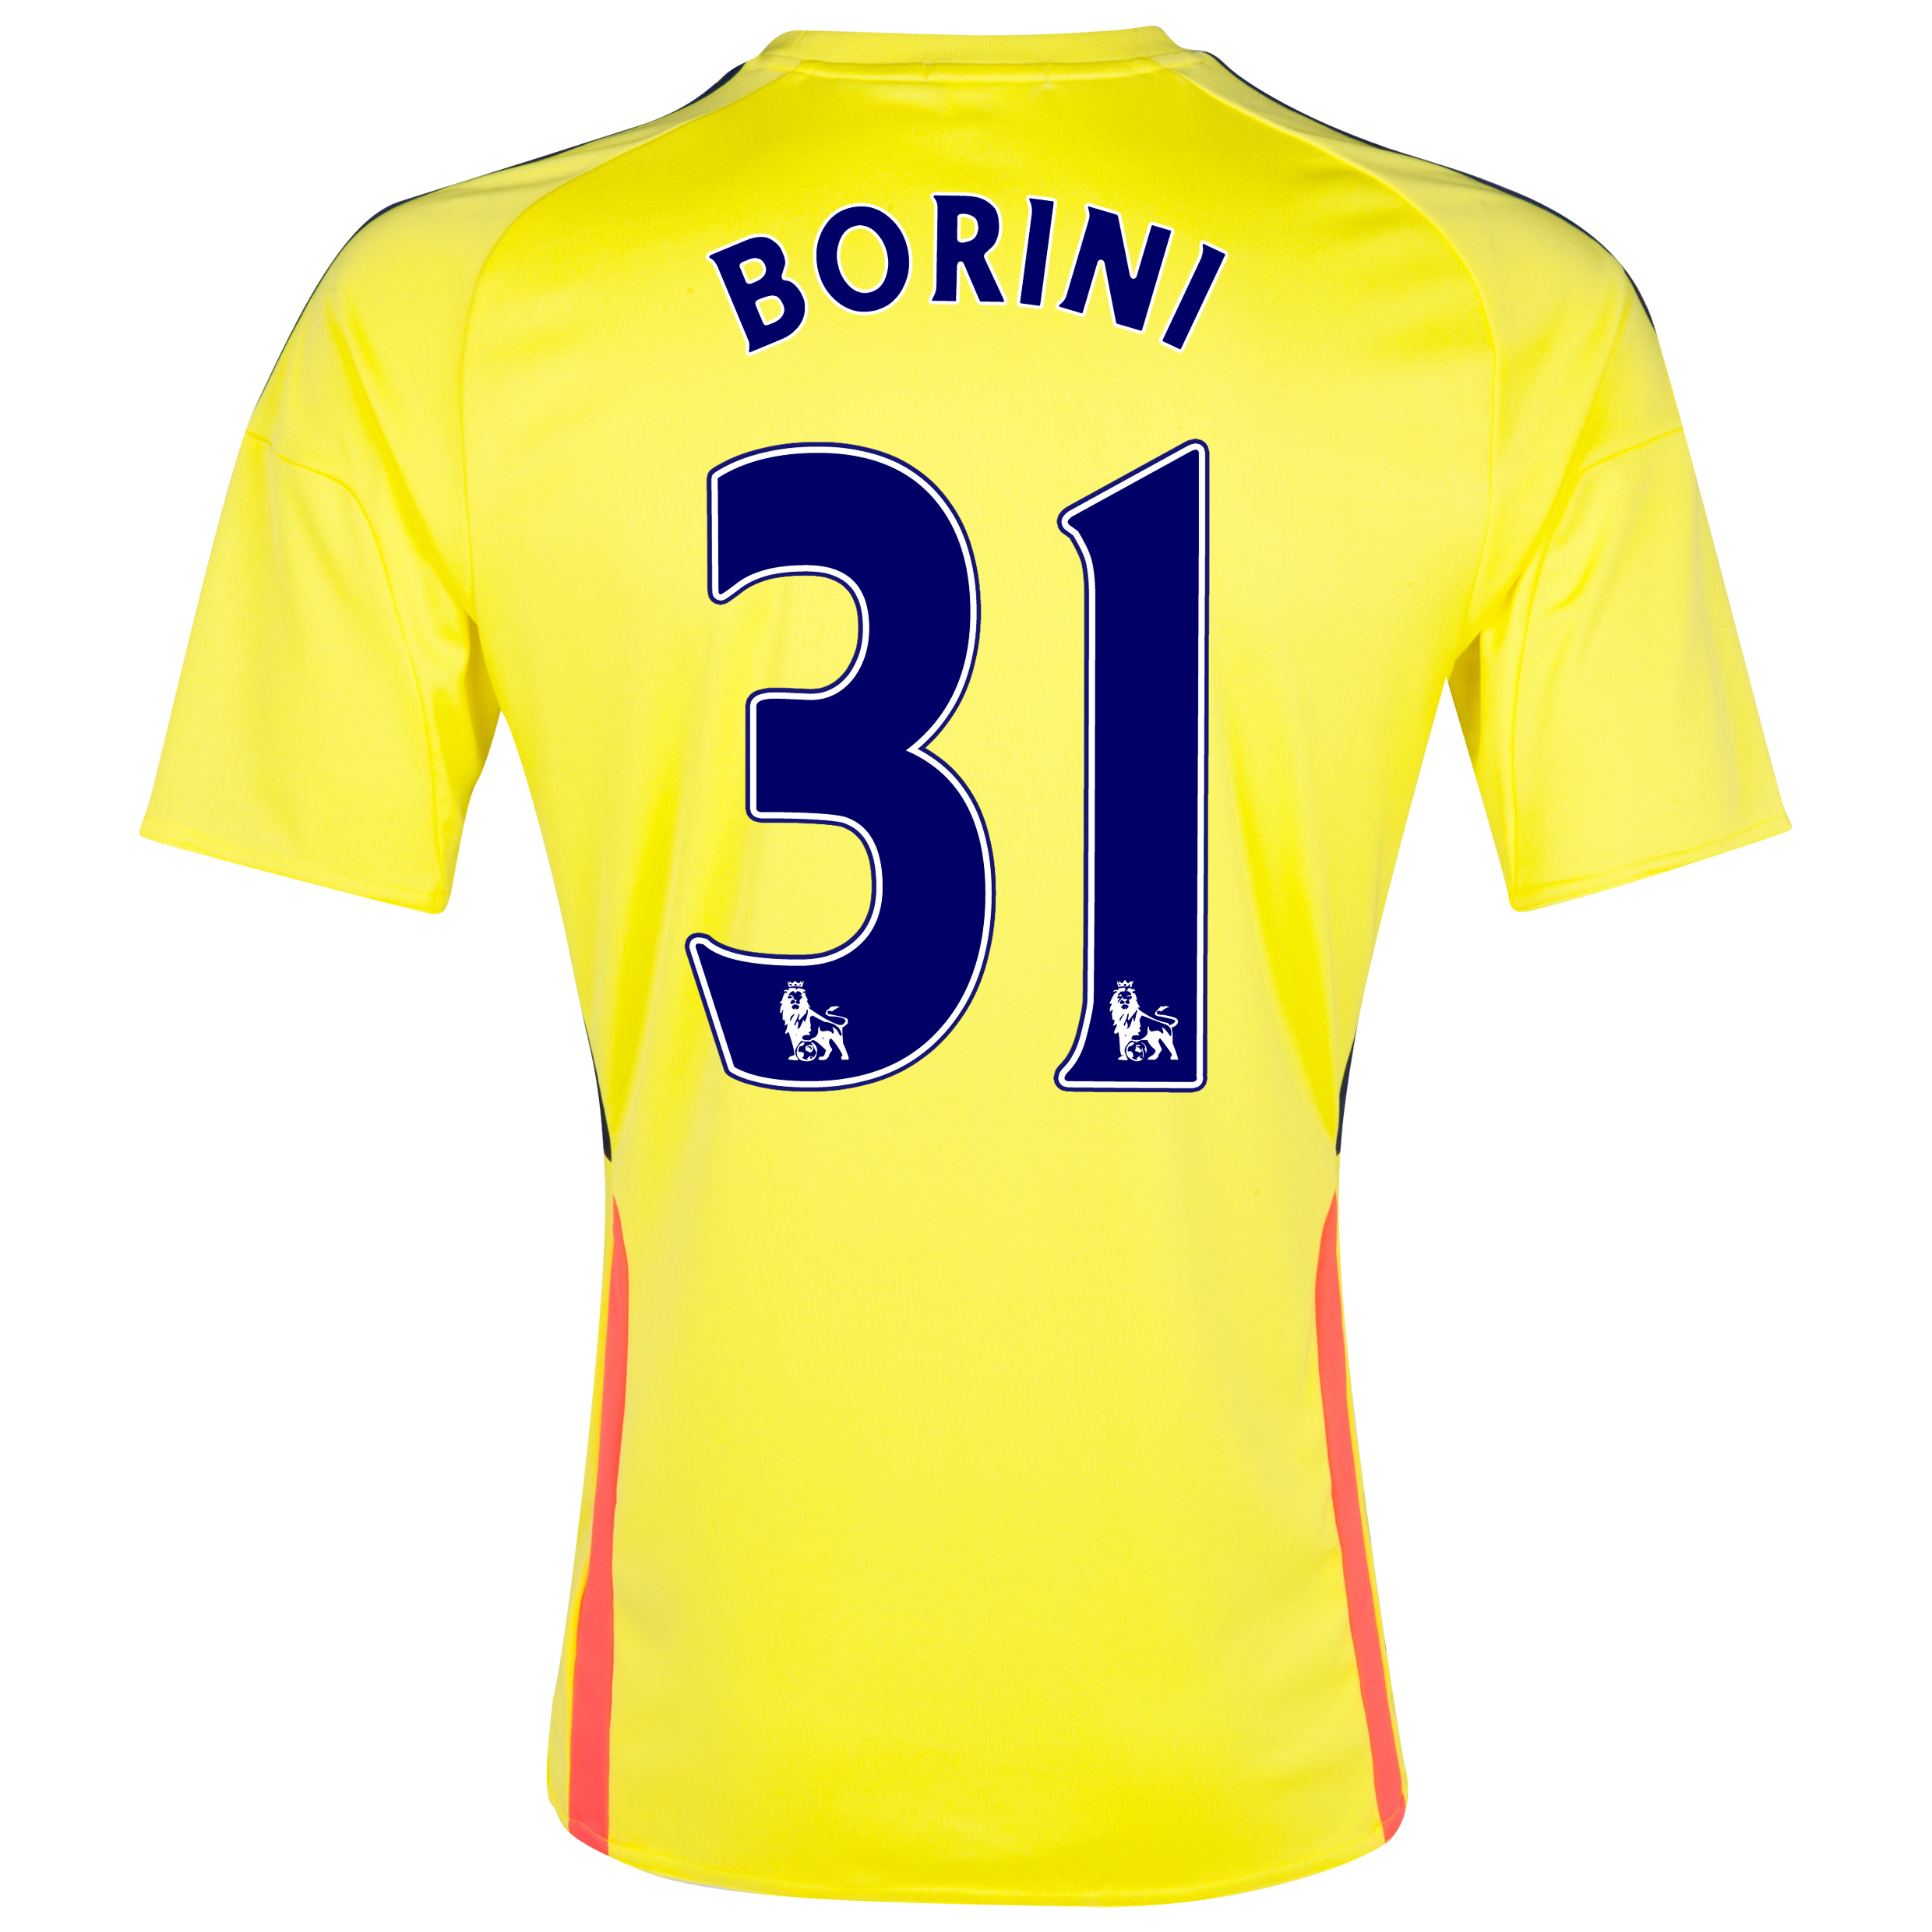 Sunderland Away Shirt 2013/14 - Junior with Borini 31 printing